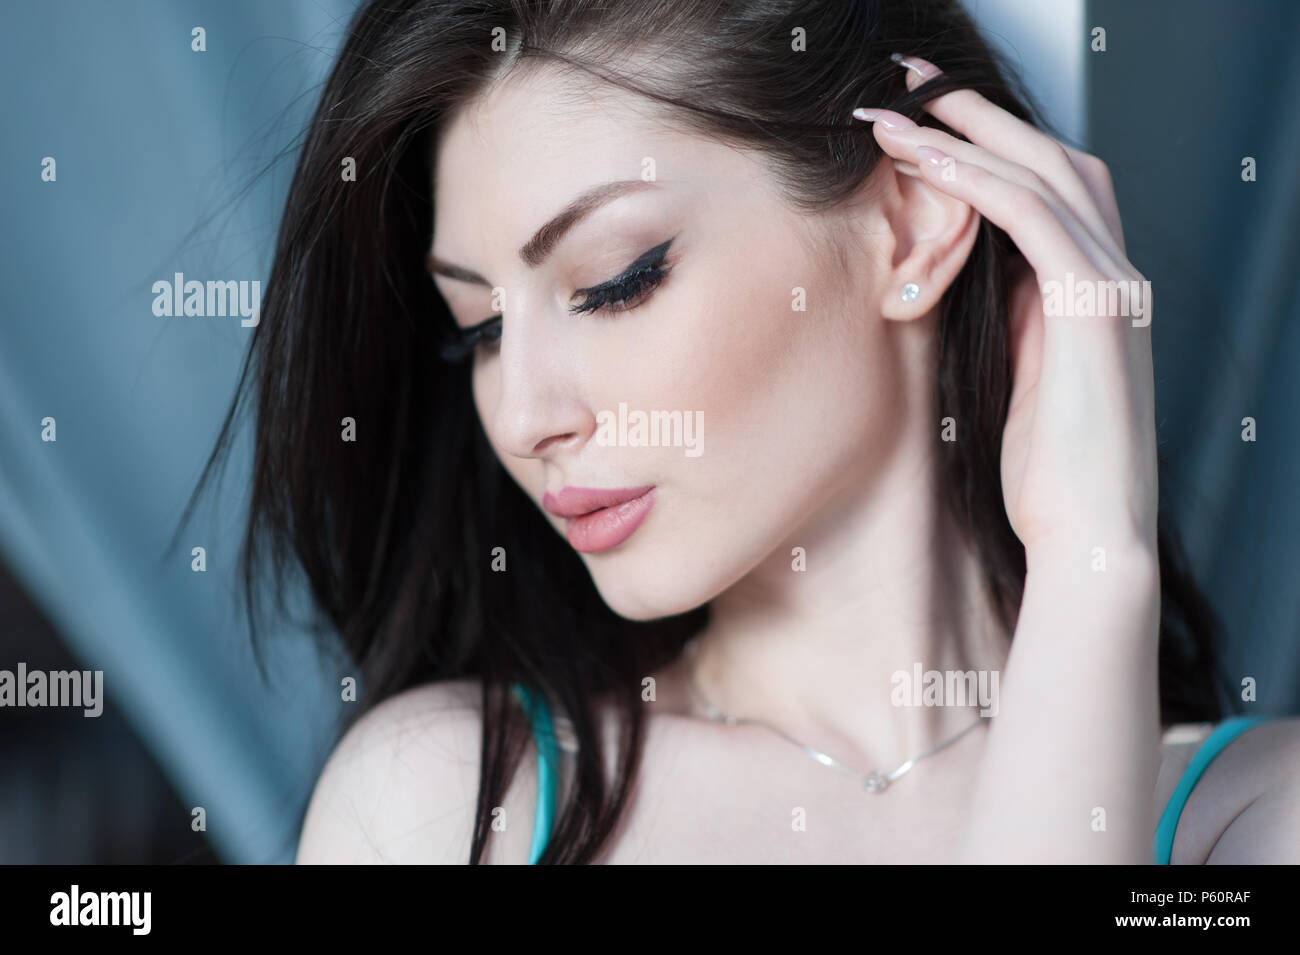 Cute Young Caucasian Woman With Closed Eyes Touching Her Hair